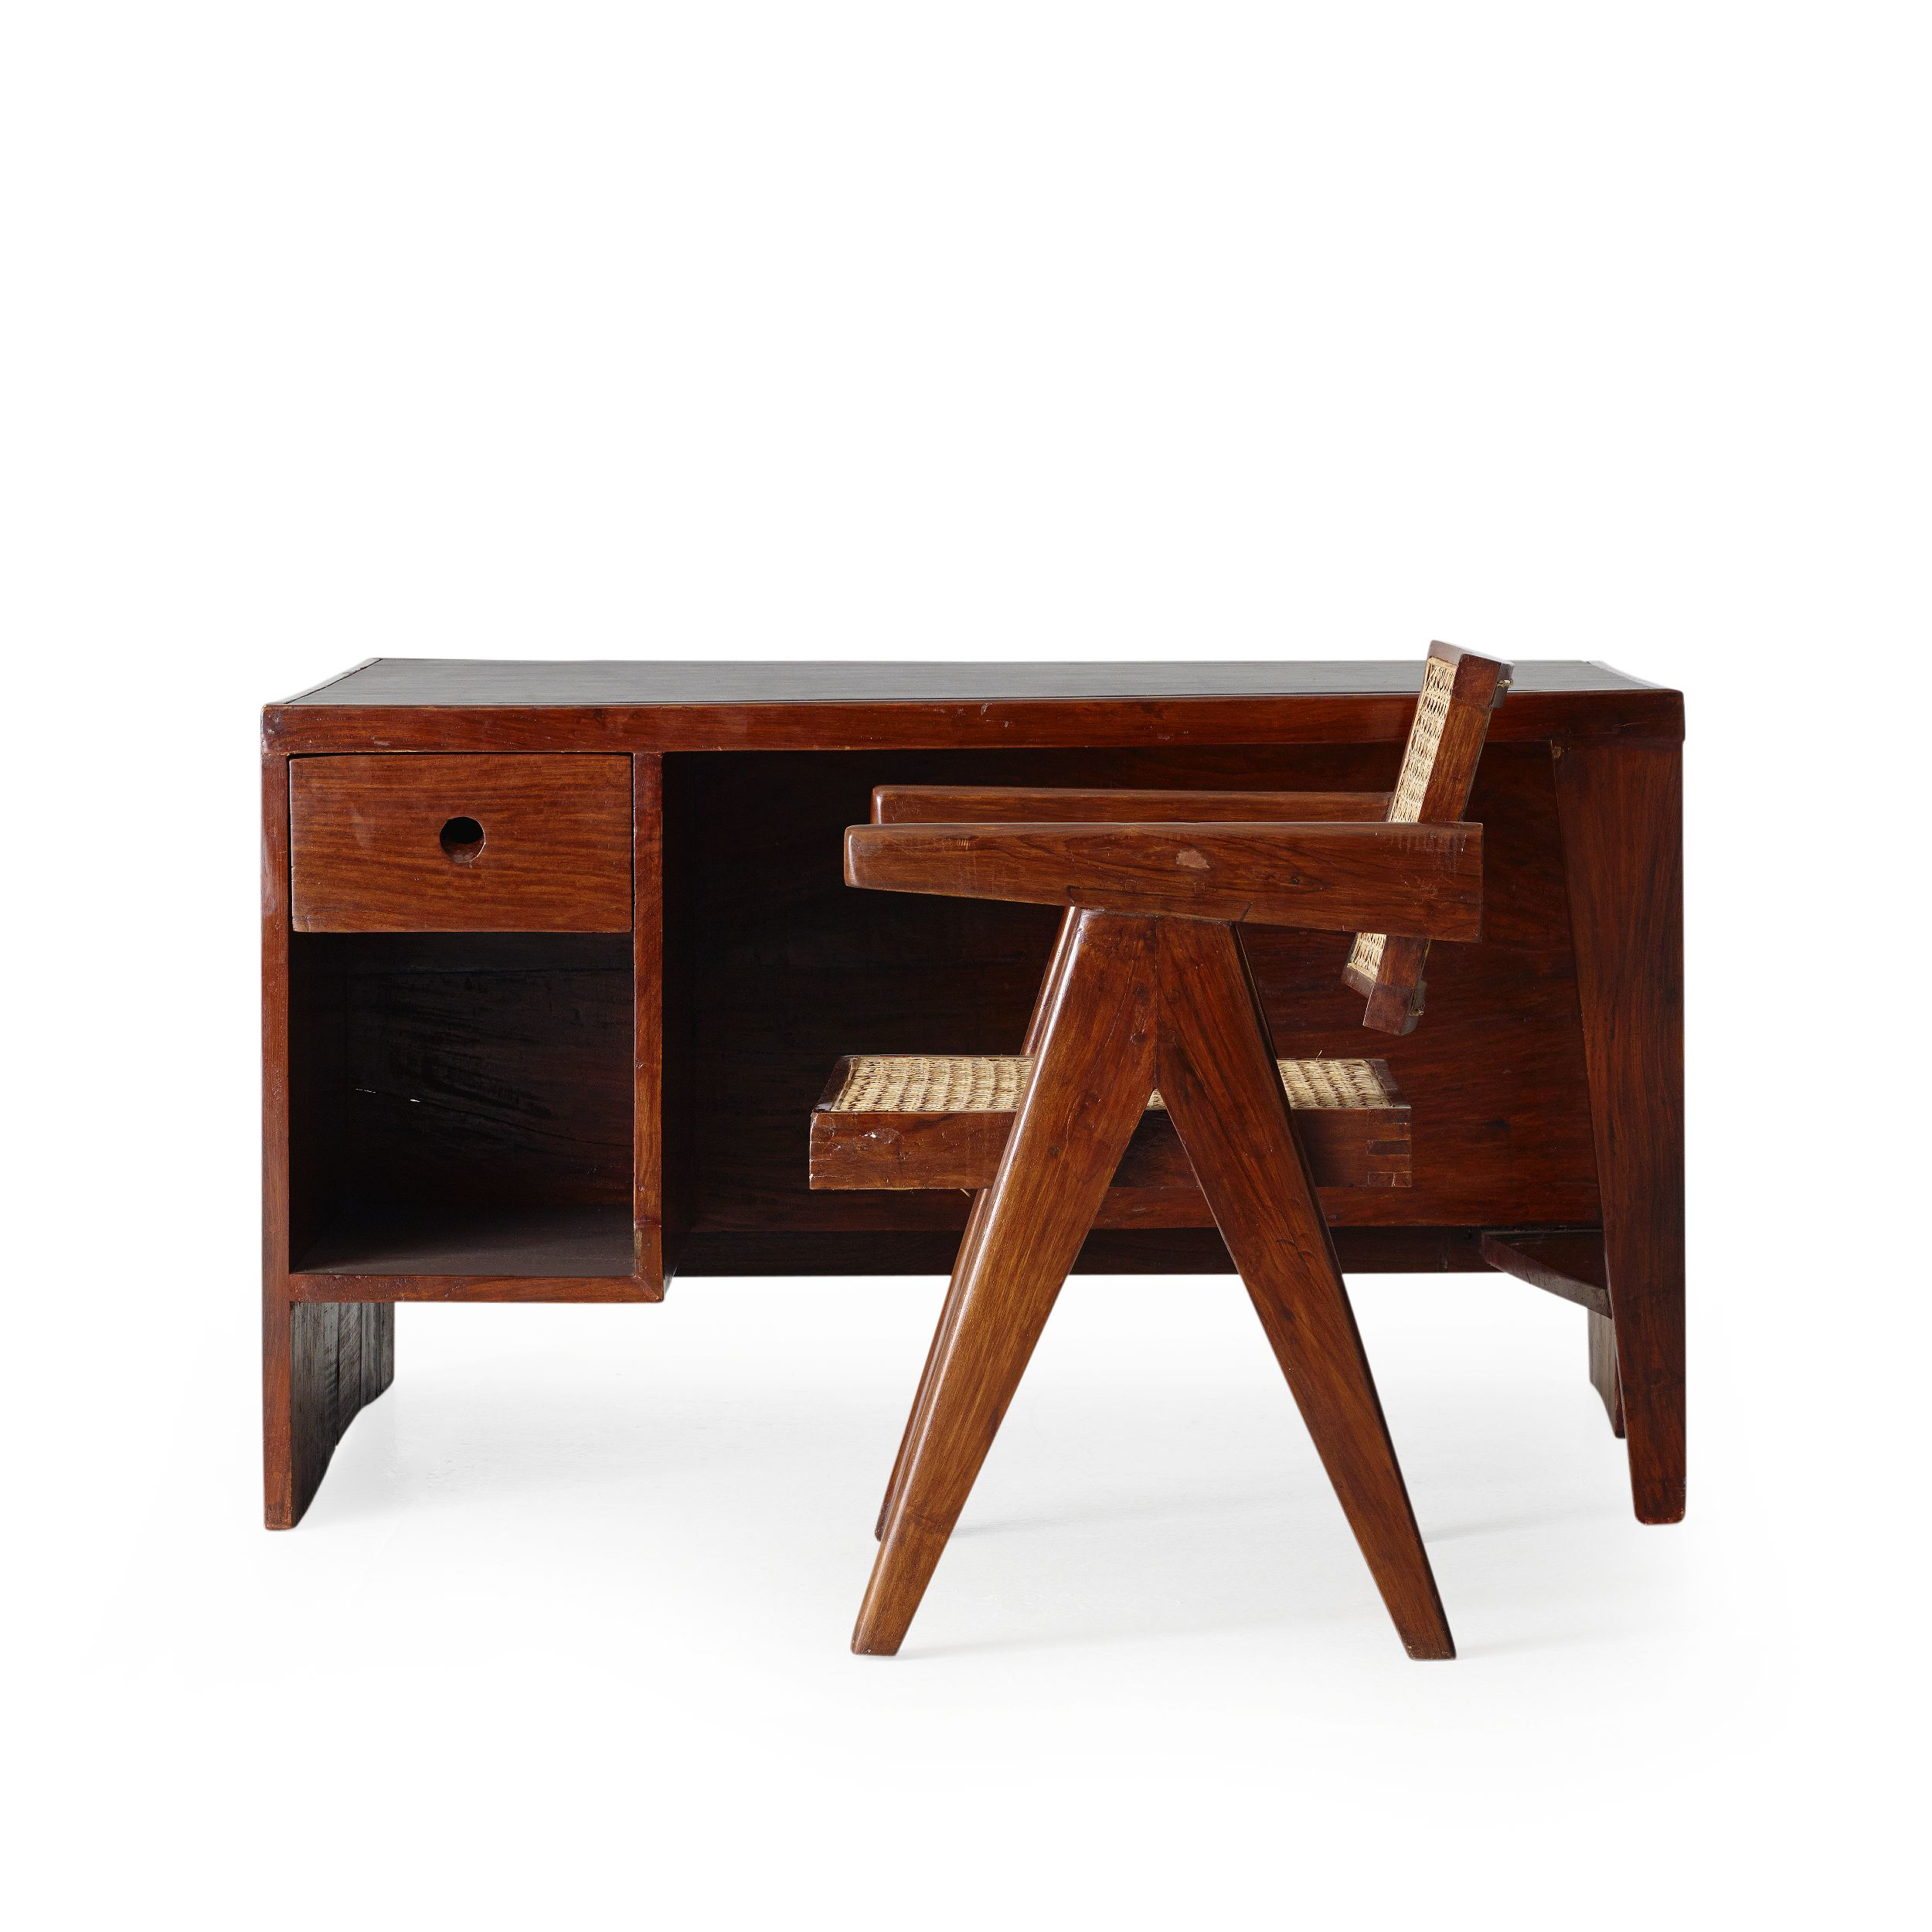 Pierre Jeanneret, Pigeonhole desk and Office chair